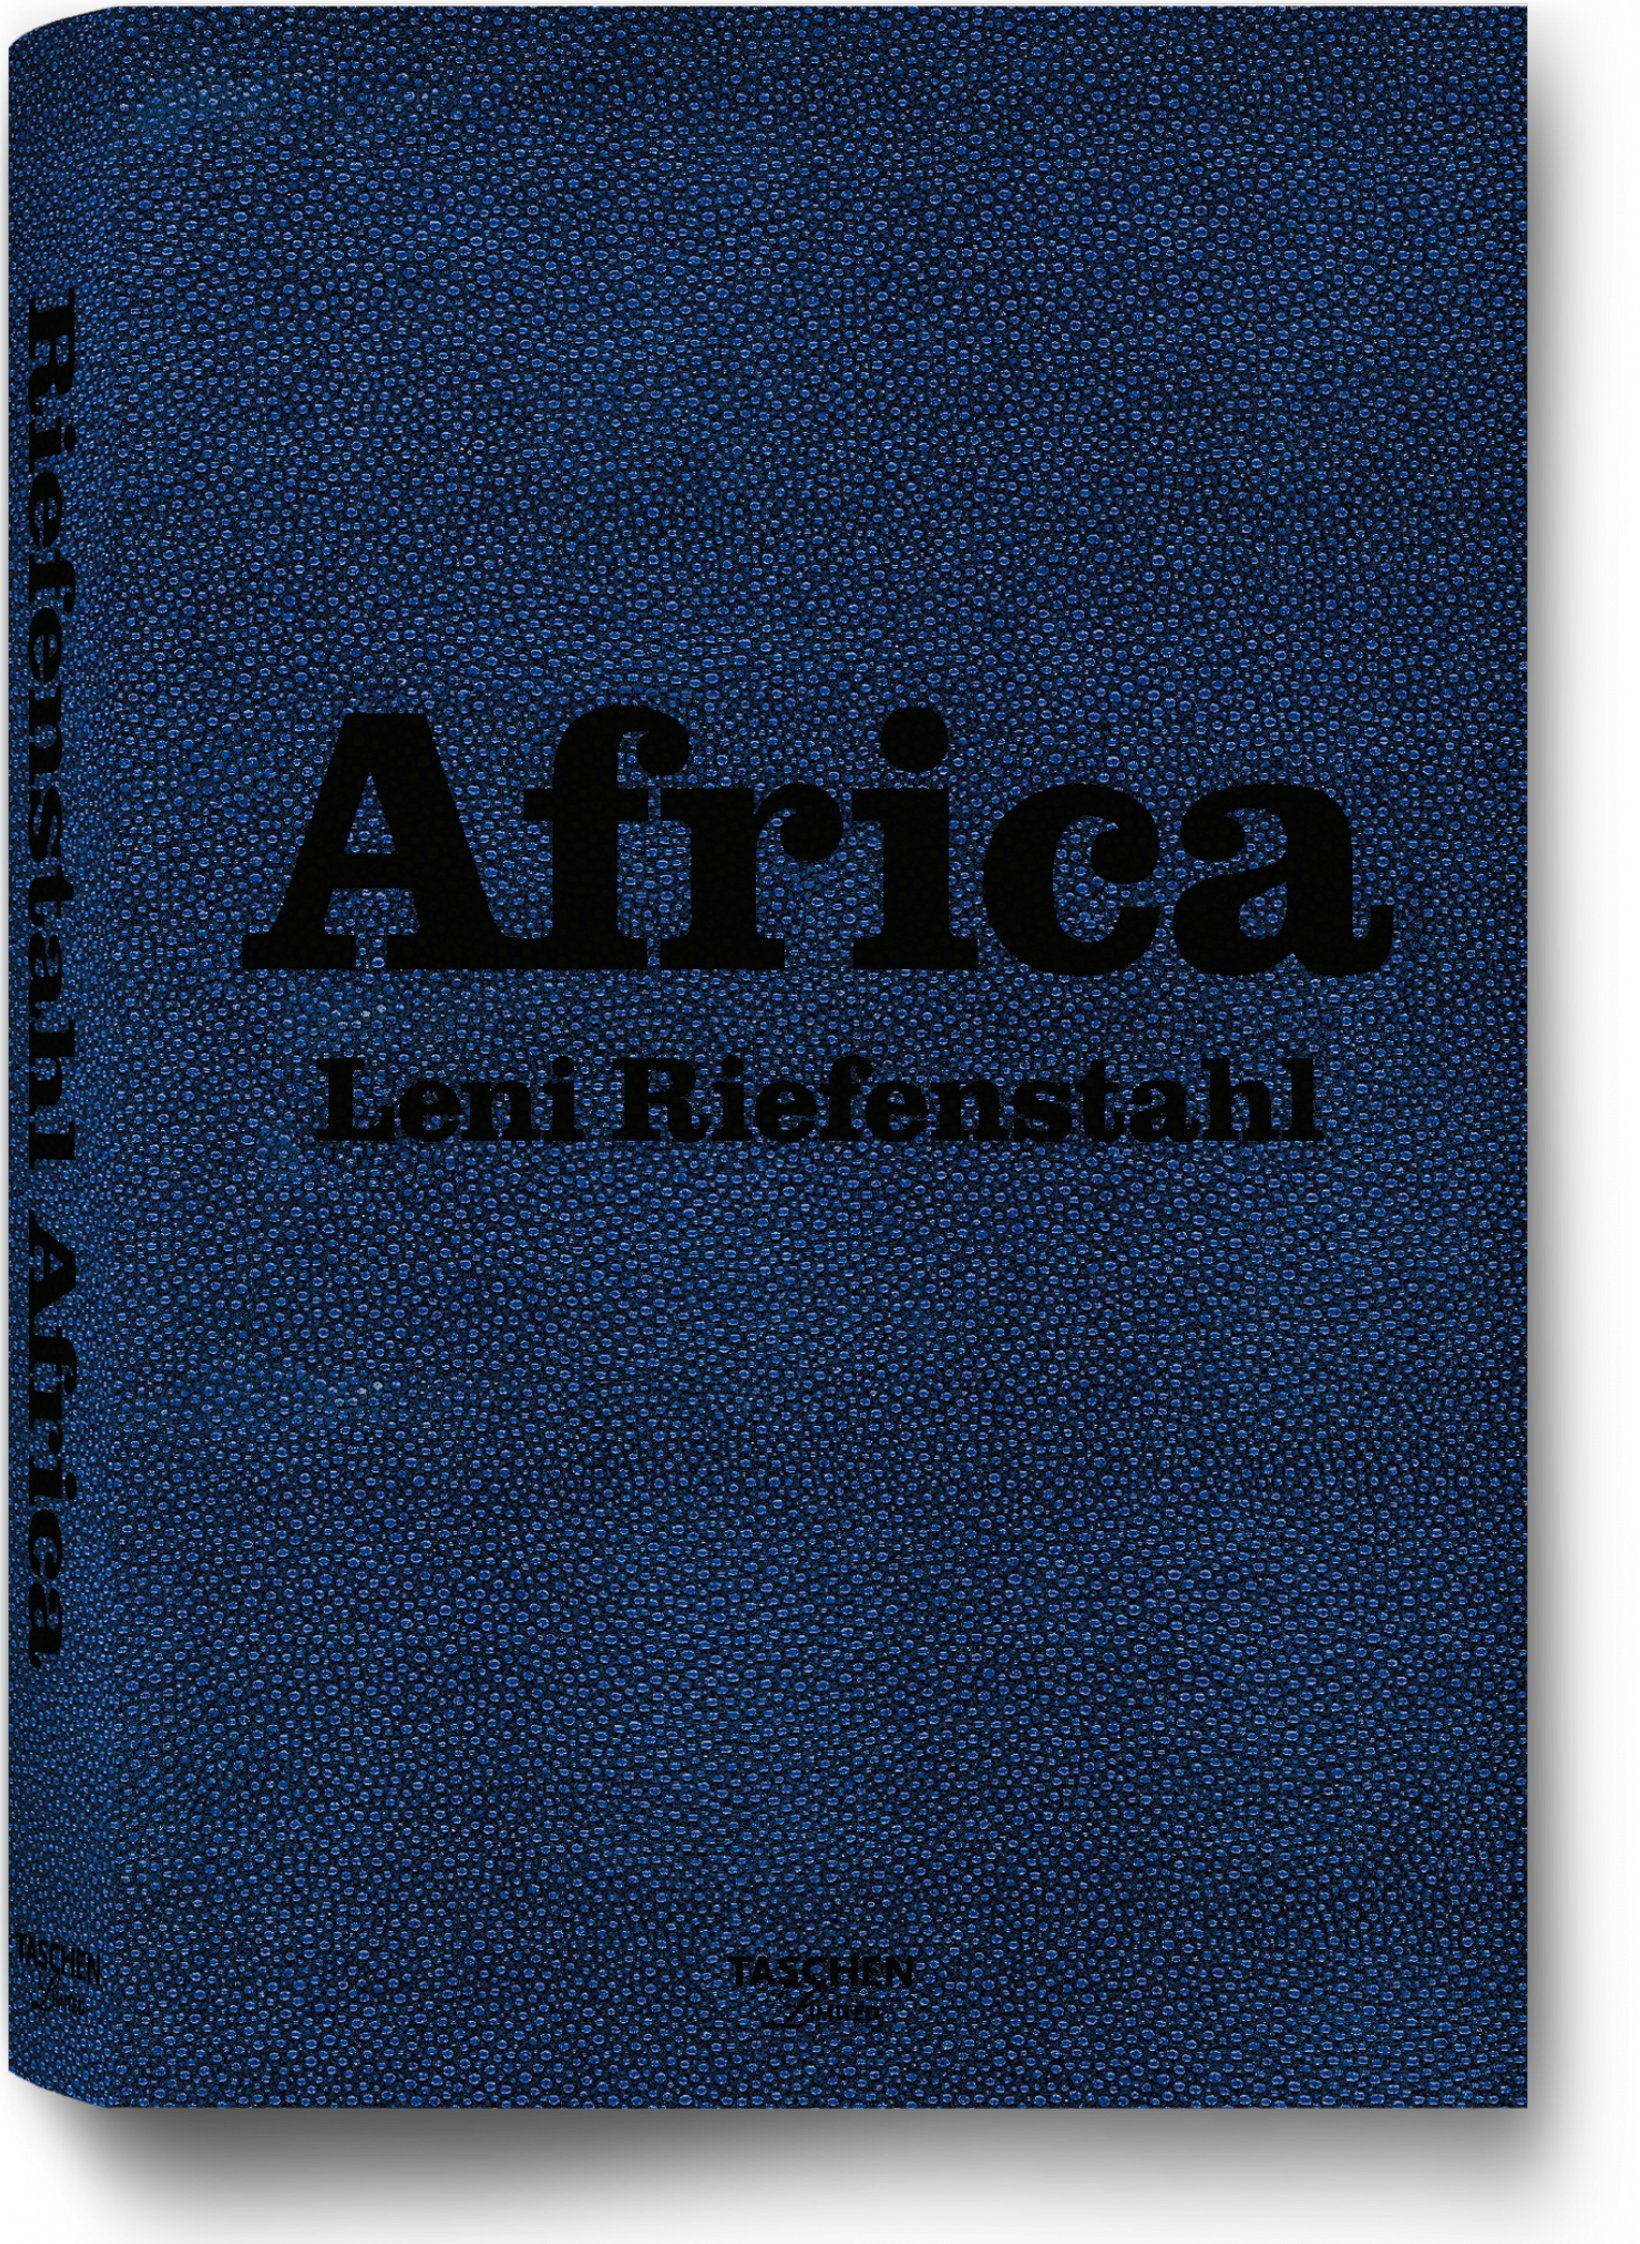 ce-riefenstahl_africa-cover_02605